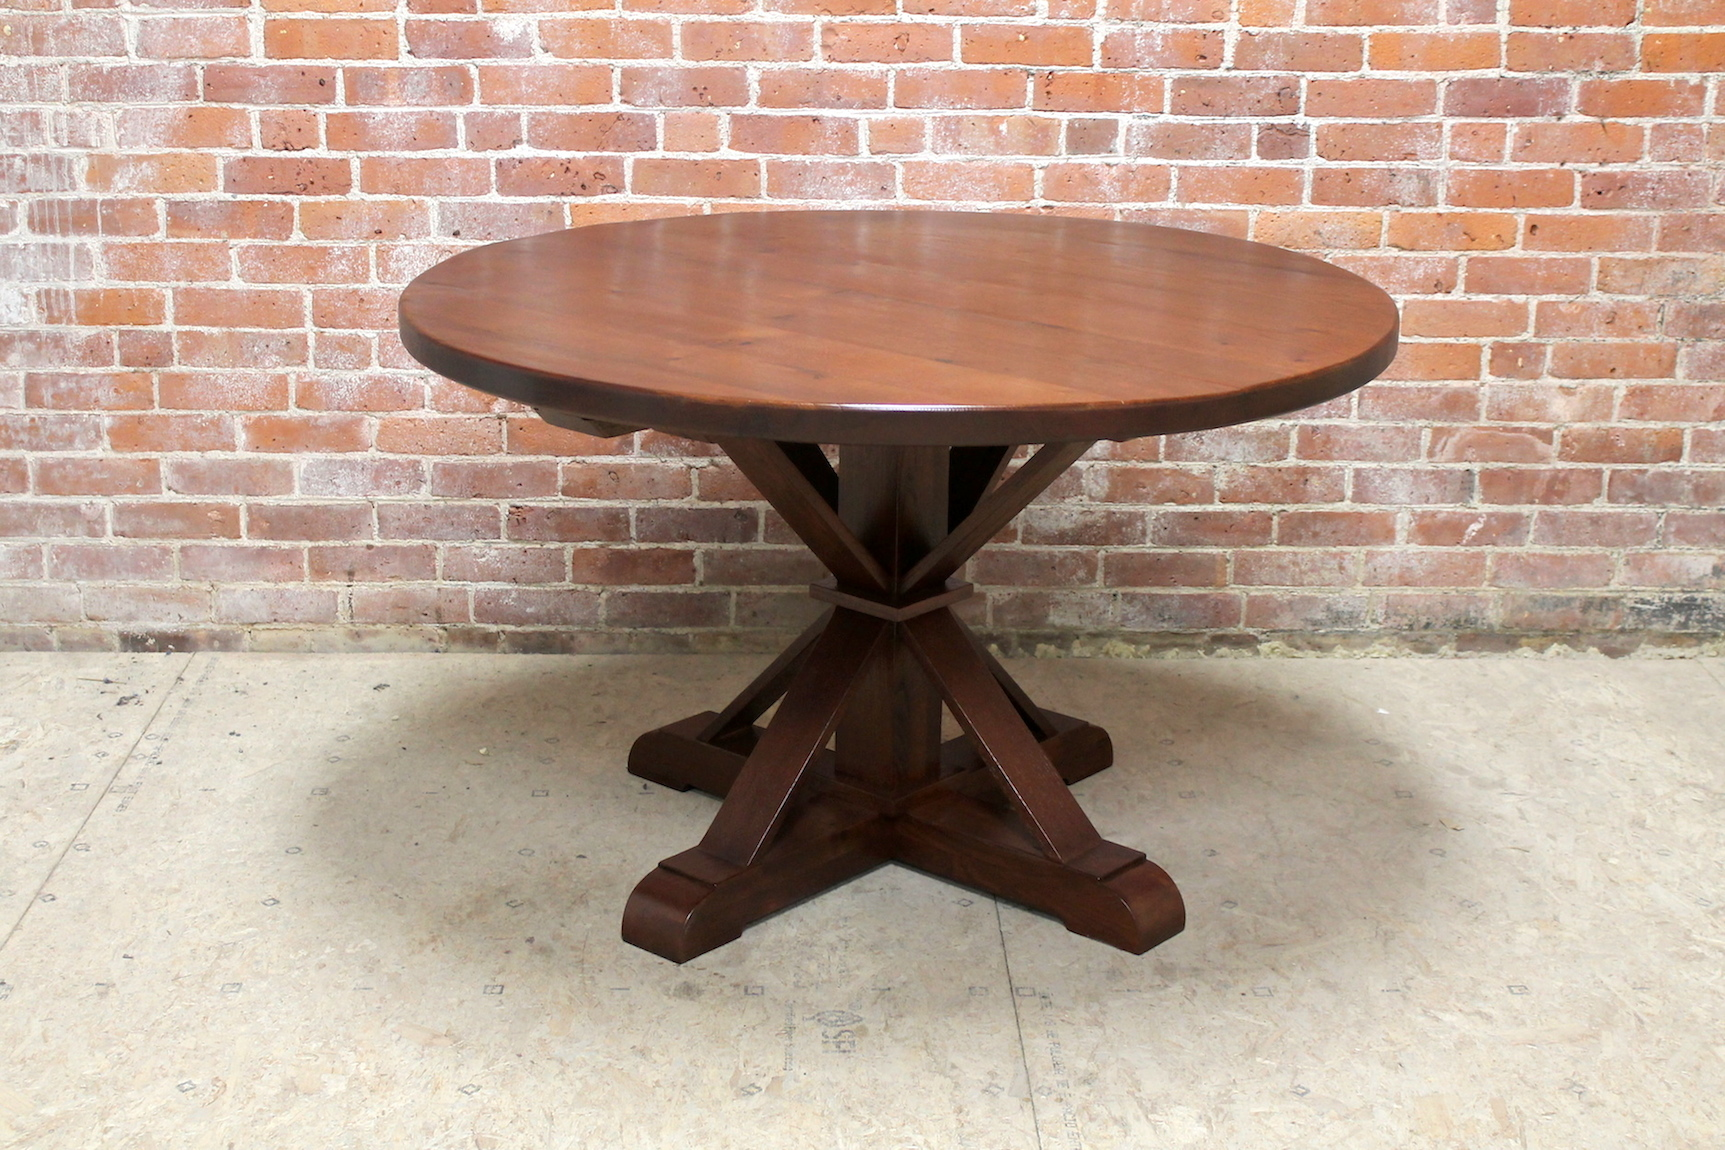 Round Dining Table BC Custom Furniture - 48 round oak dining table